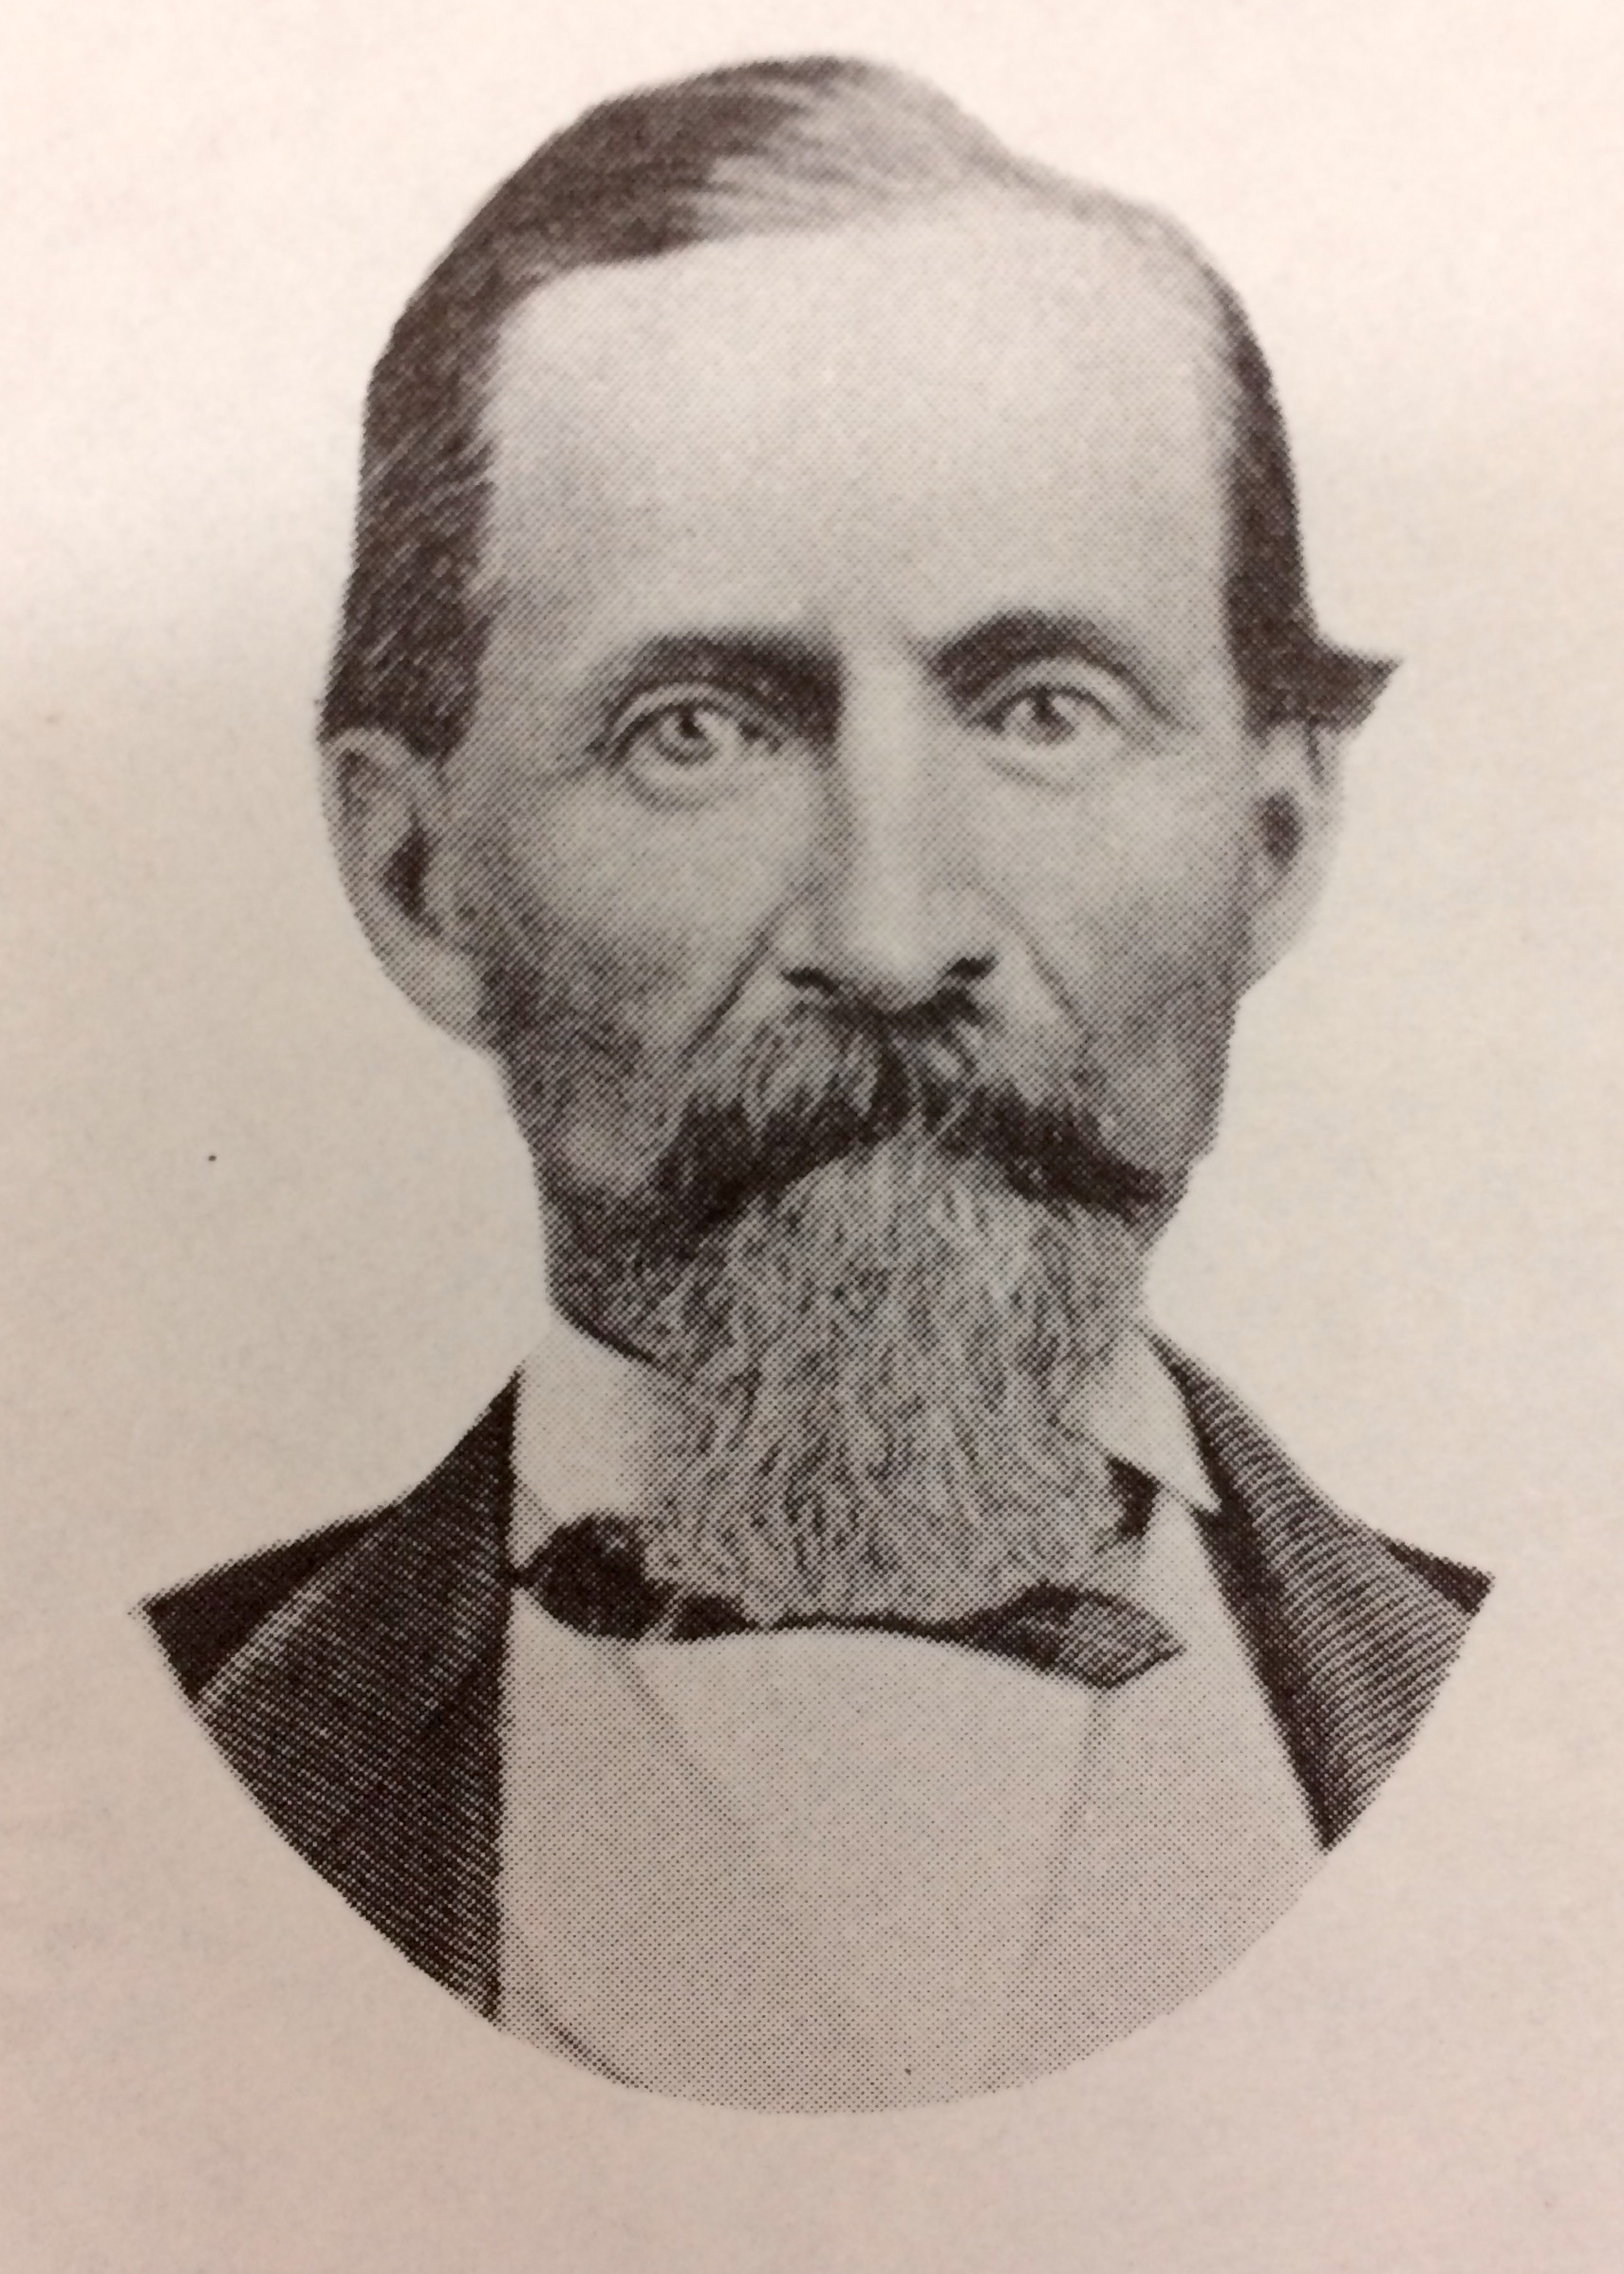 William Hyde in about 1870